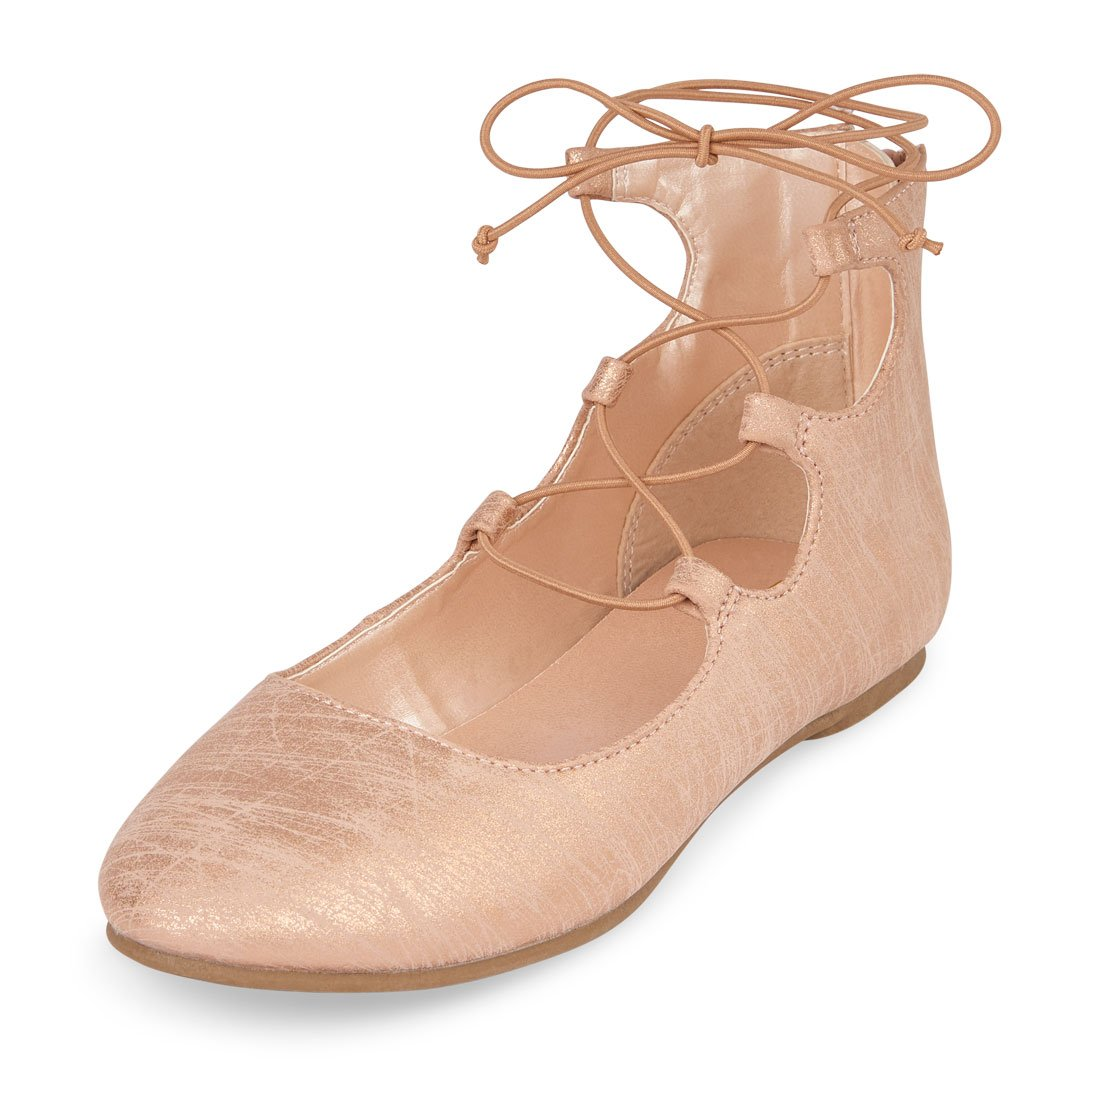 The Children's Place Girls' BG Lace-up Avery Ballet Flat, Rose Gold, Youth 1 Youth US Big Kid